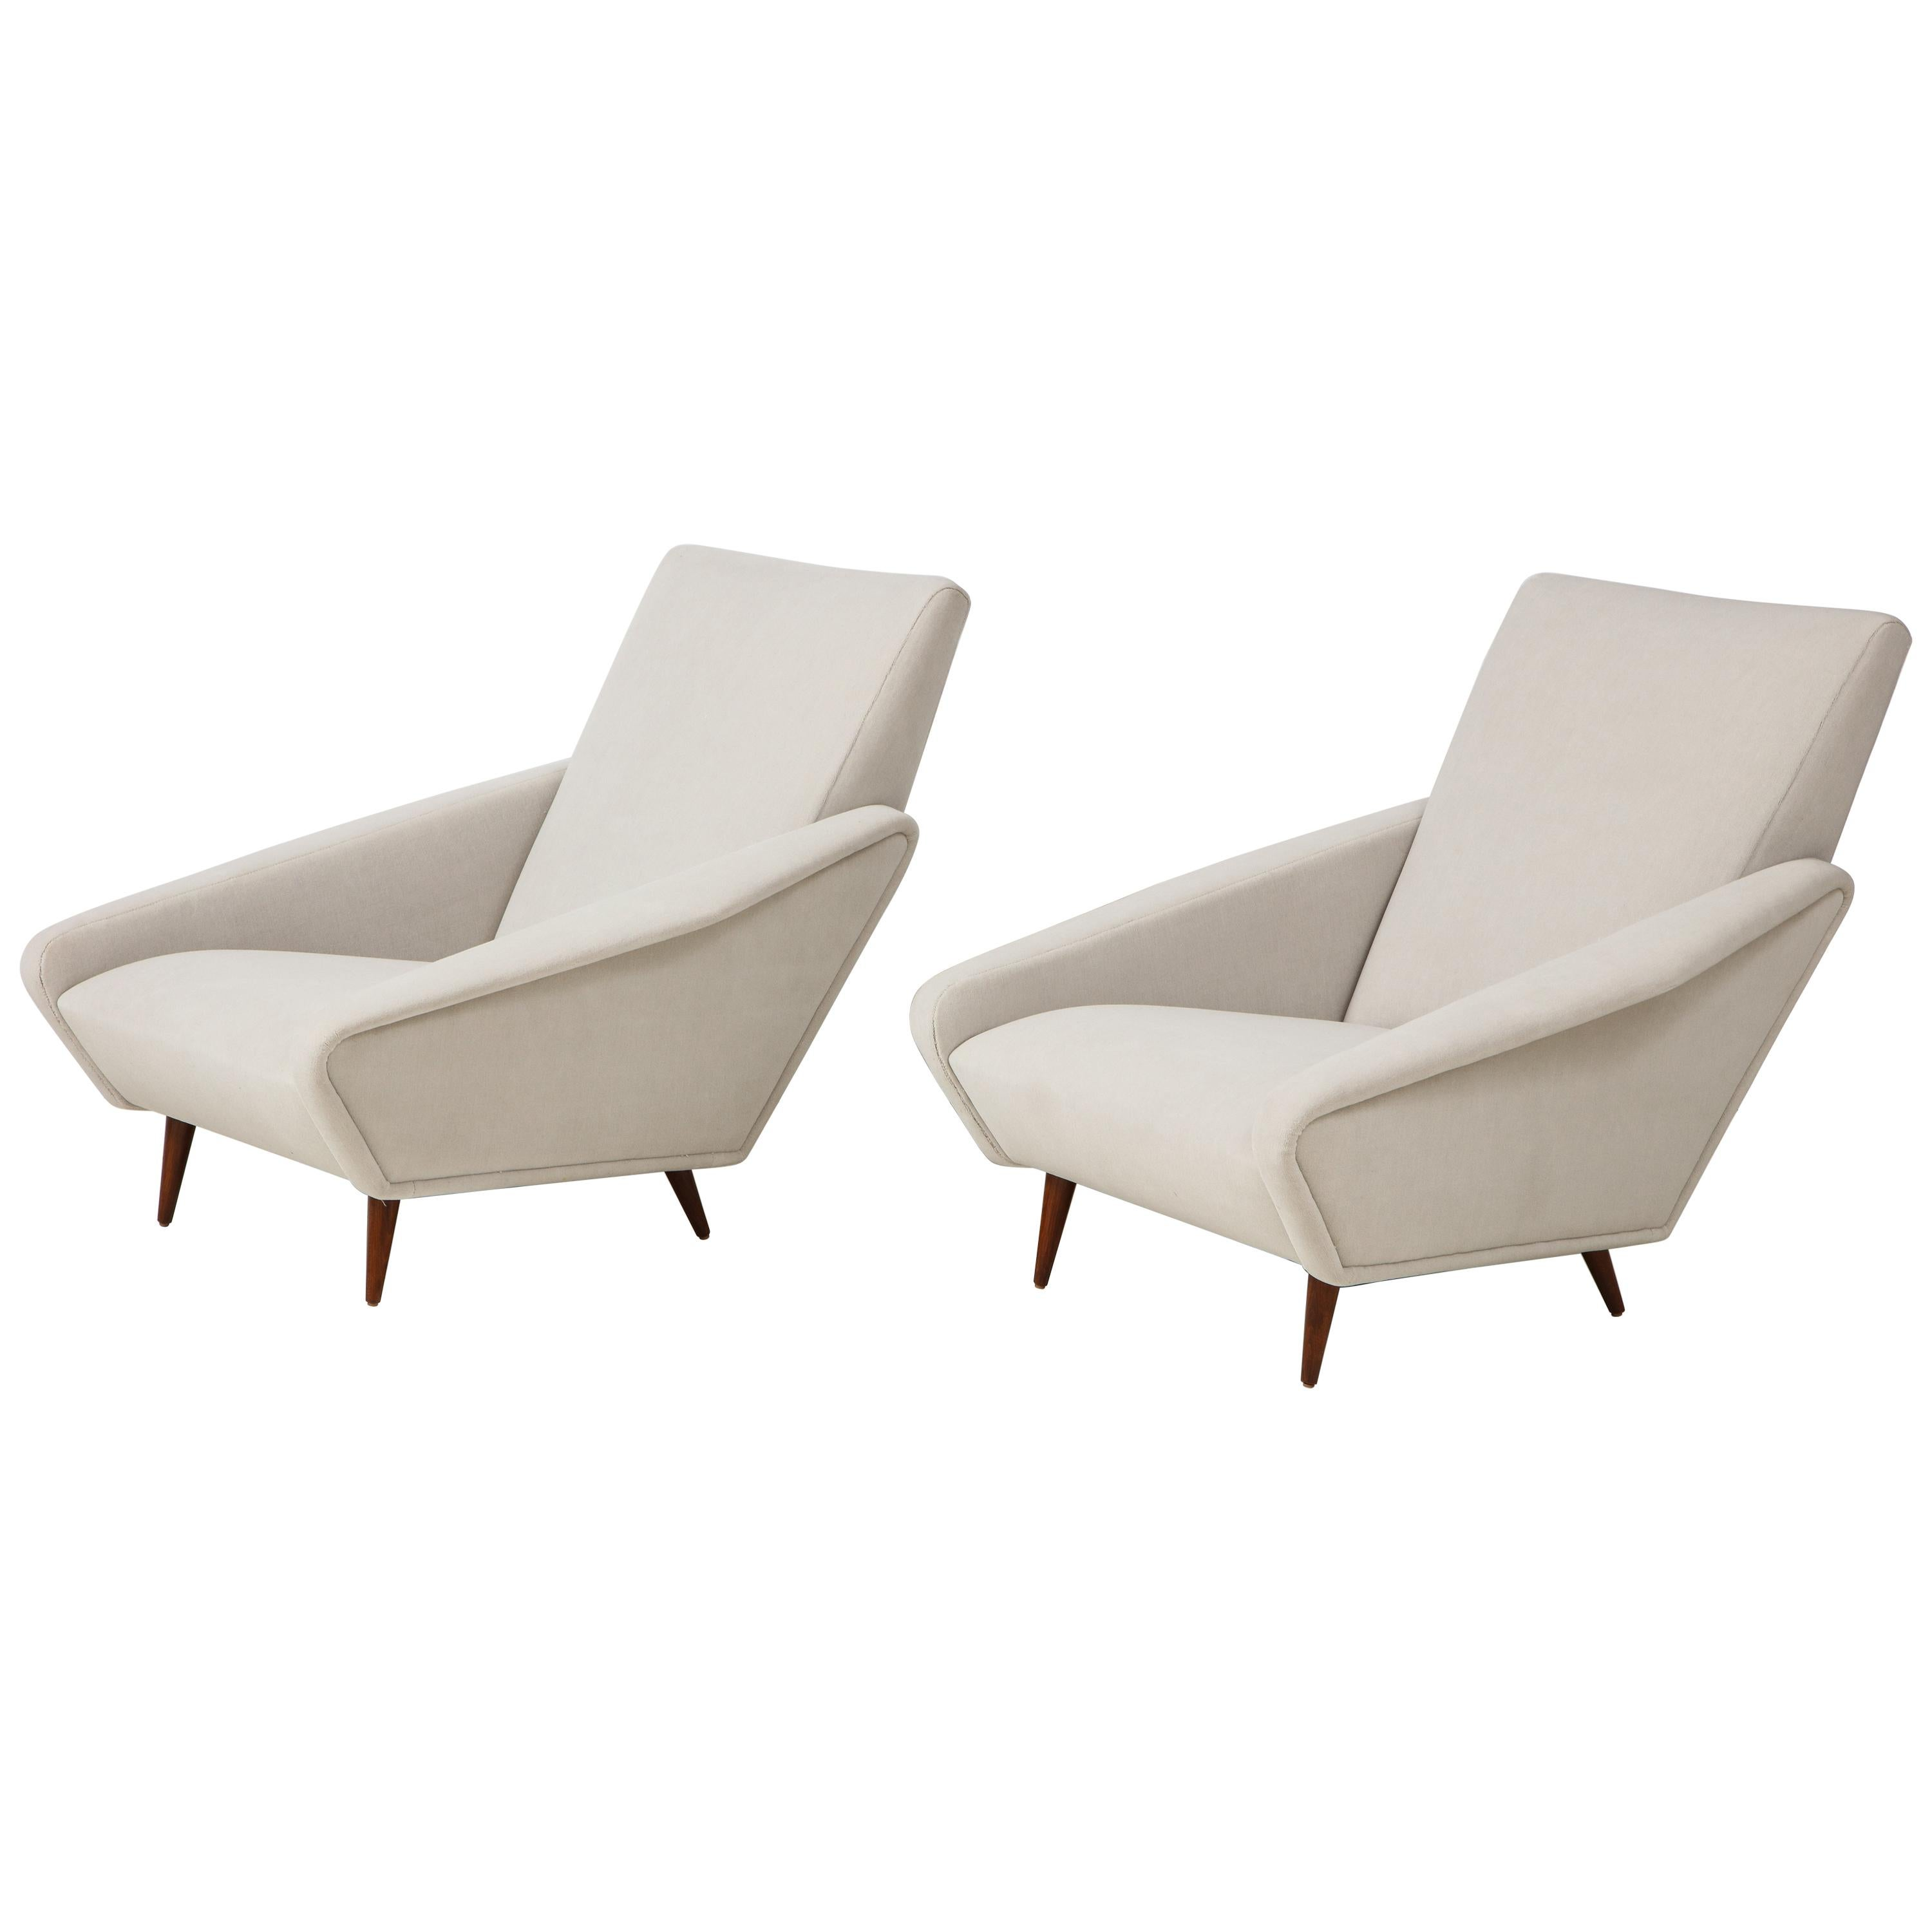 Gio Ponti for Cassina Rare Pair of Distex Lounge Chairs Model 807 in Wool Velvet